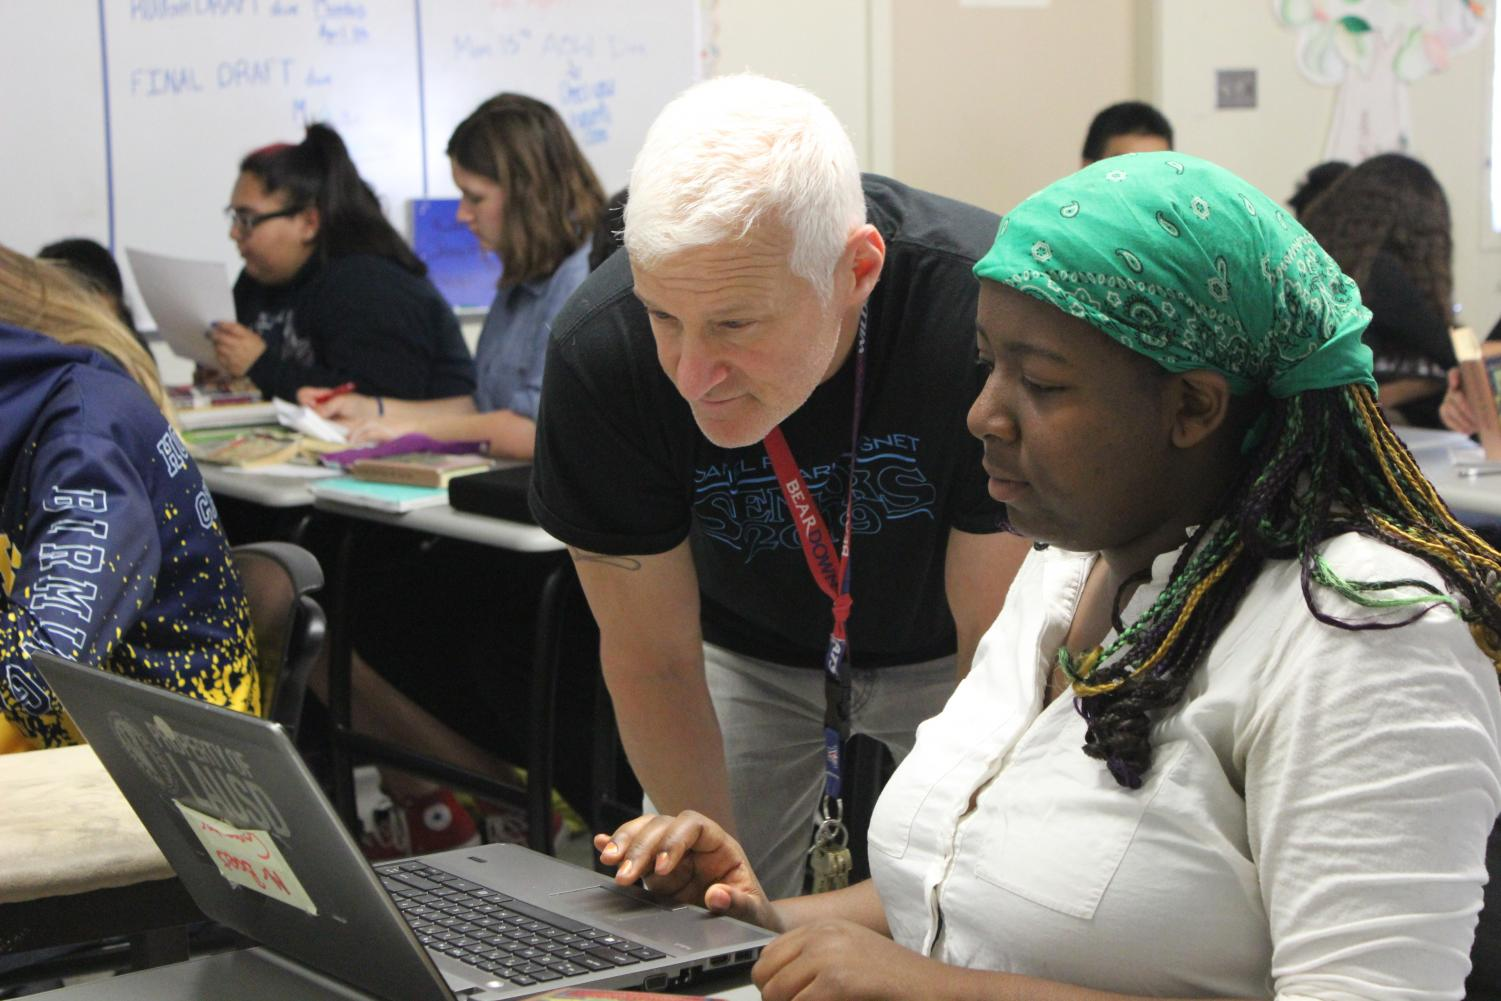 English teacher Ron Baer helps a student with her laptop during period three on April 11.